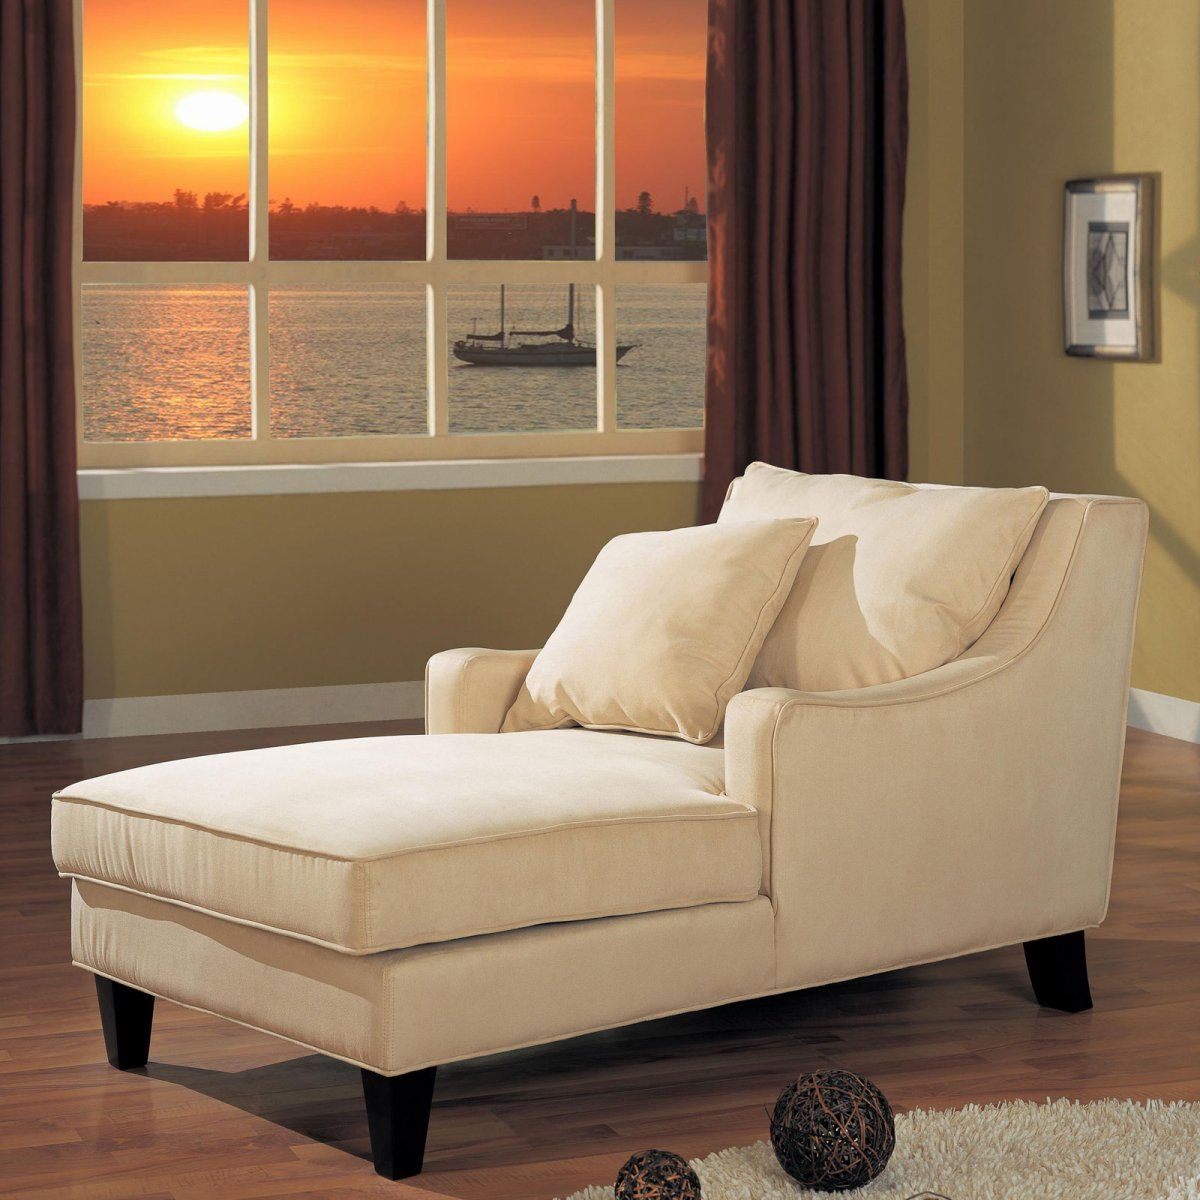 Manchester Chaise Lounge...love this for my bedroom | Home Decor ...